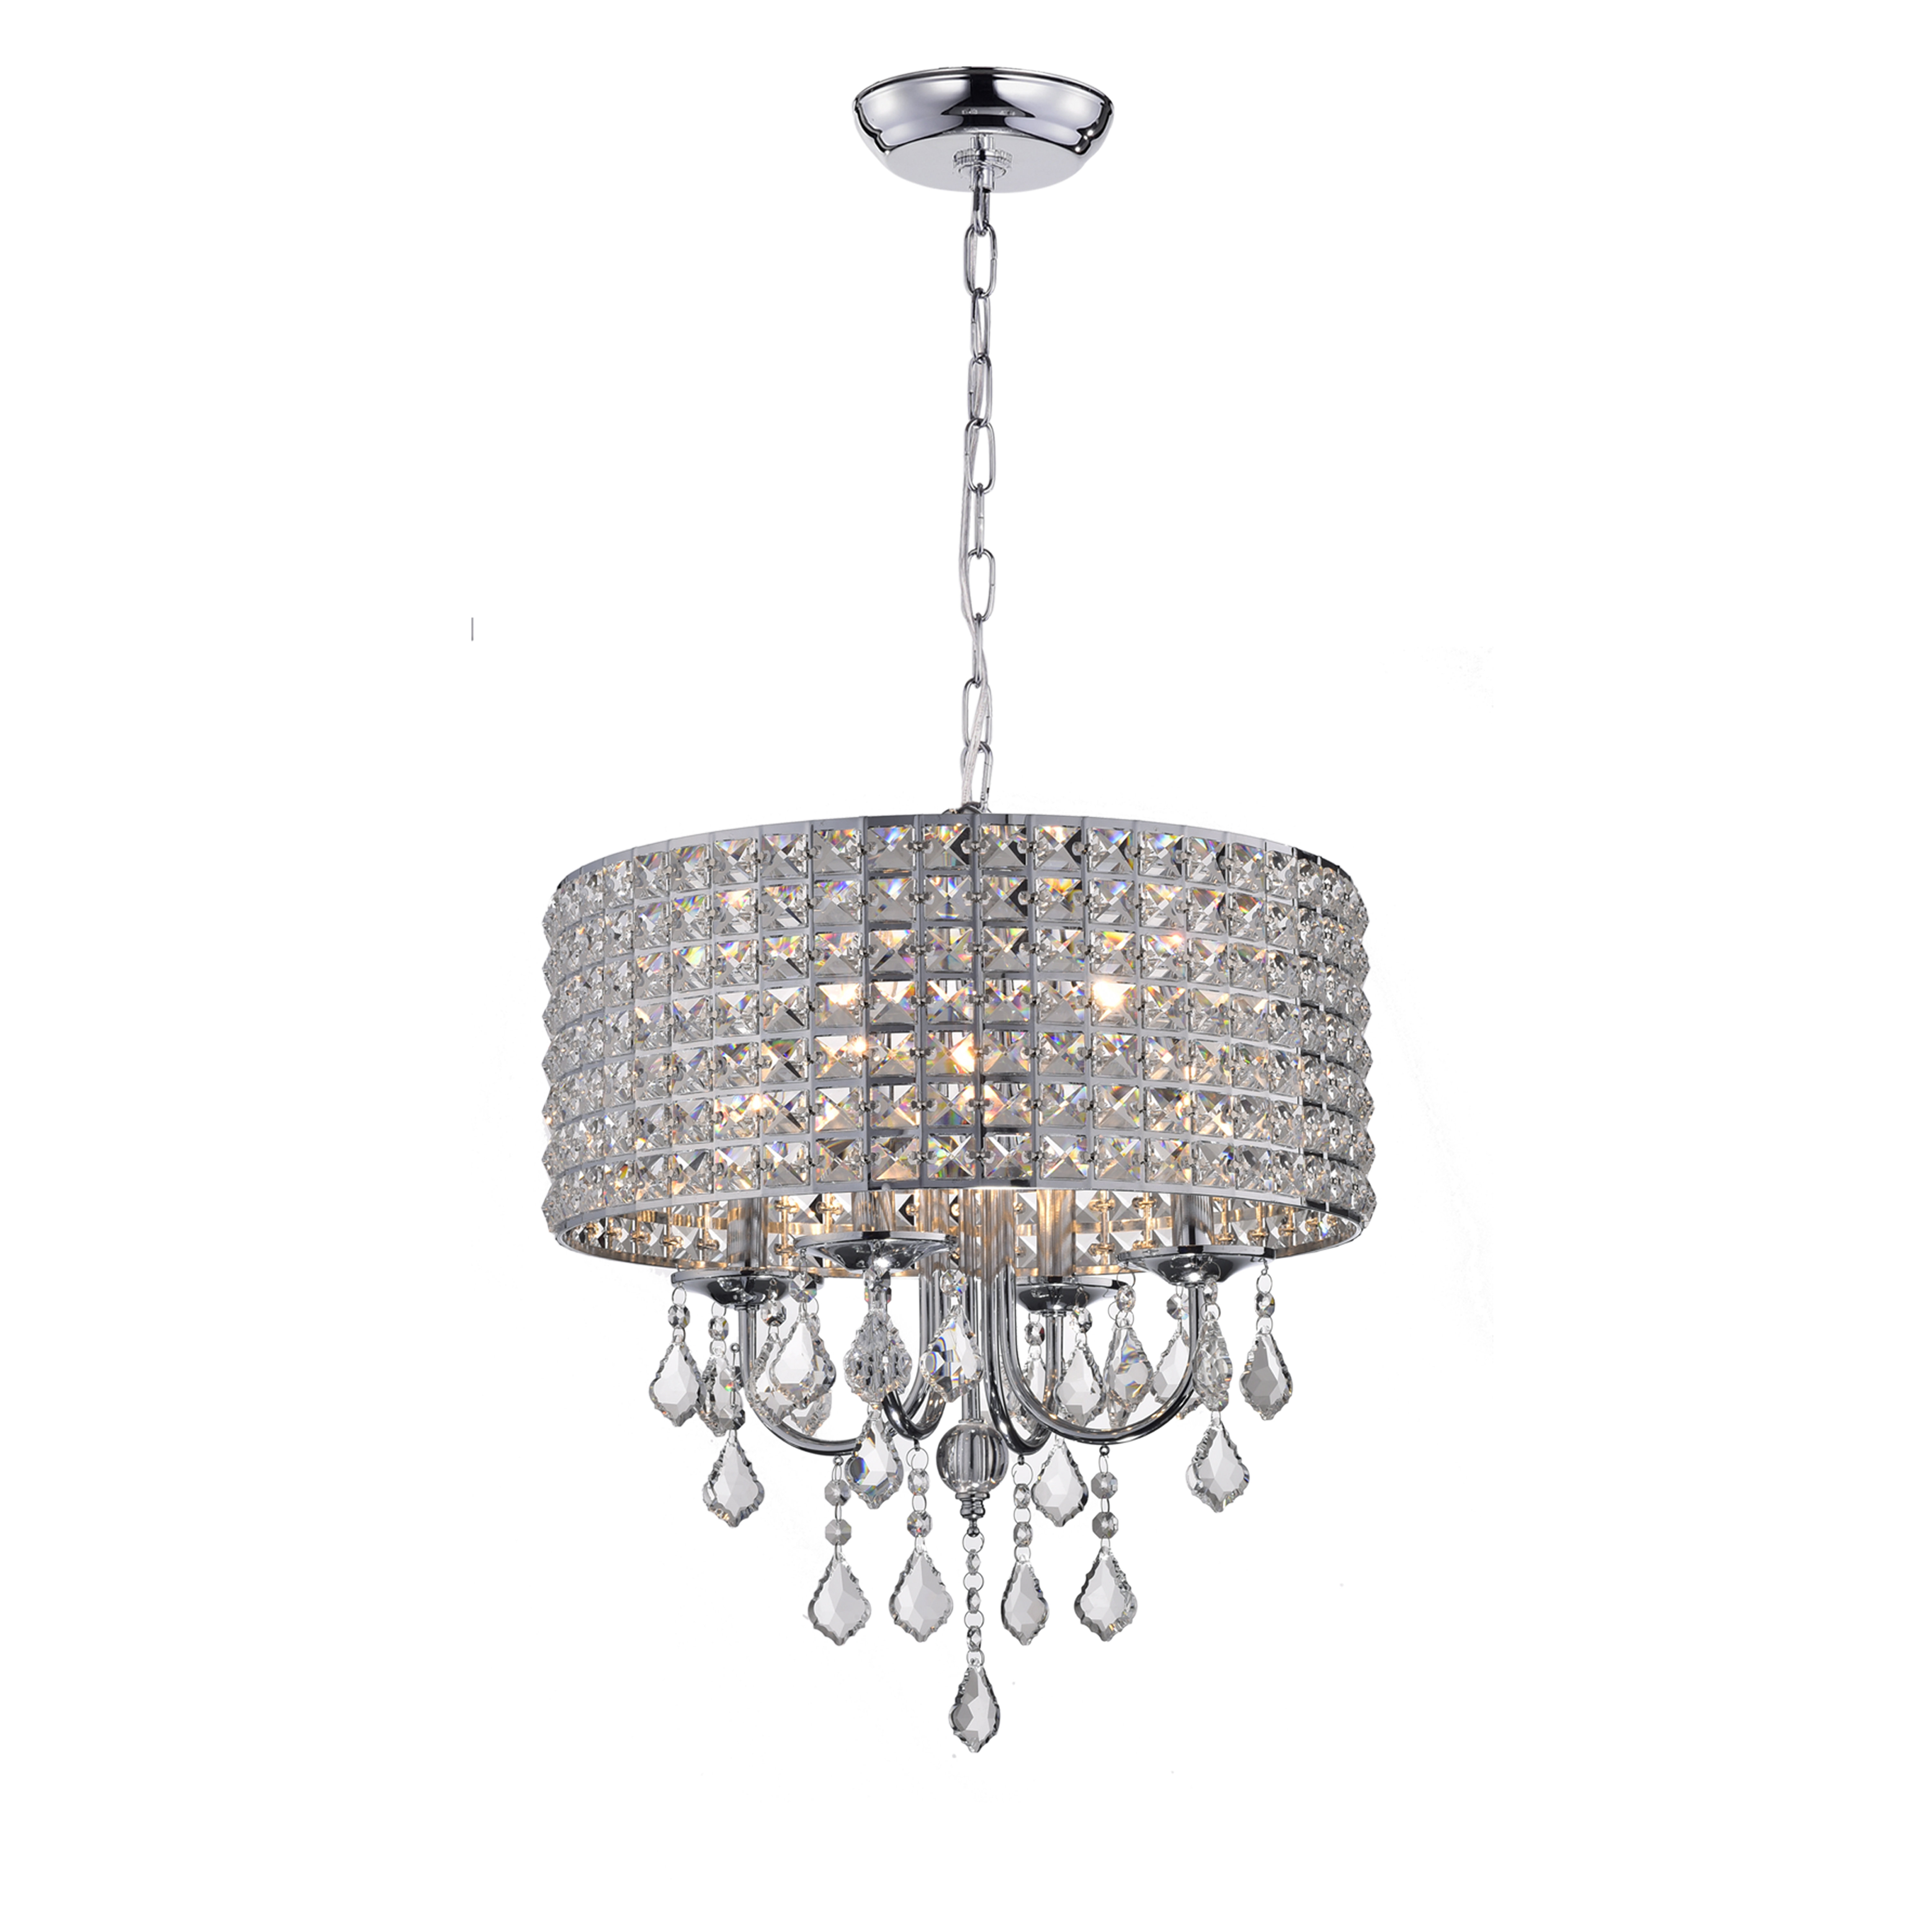 Albano 4 Light Crystal Chandeliers For Current Albano 4 Light Crystal Chandelier (View 3 of 25)